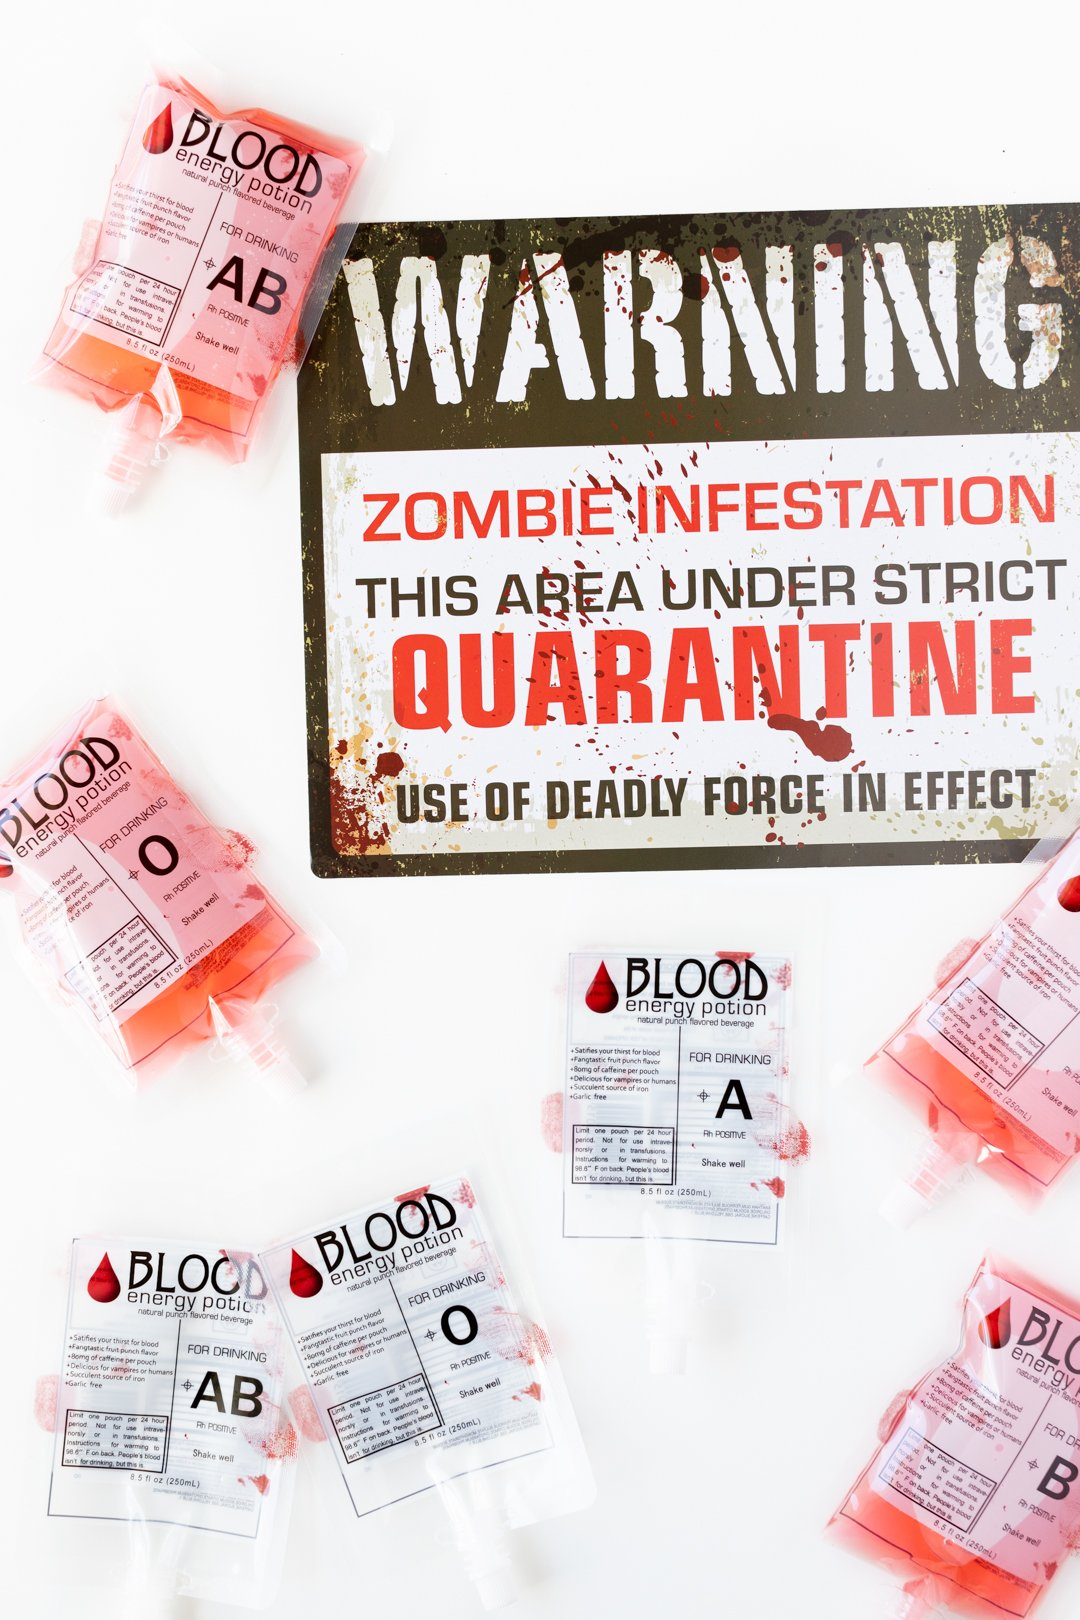 Zombie Infestation Sign with Blood Bag Drinks.